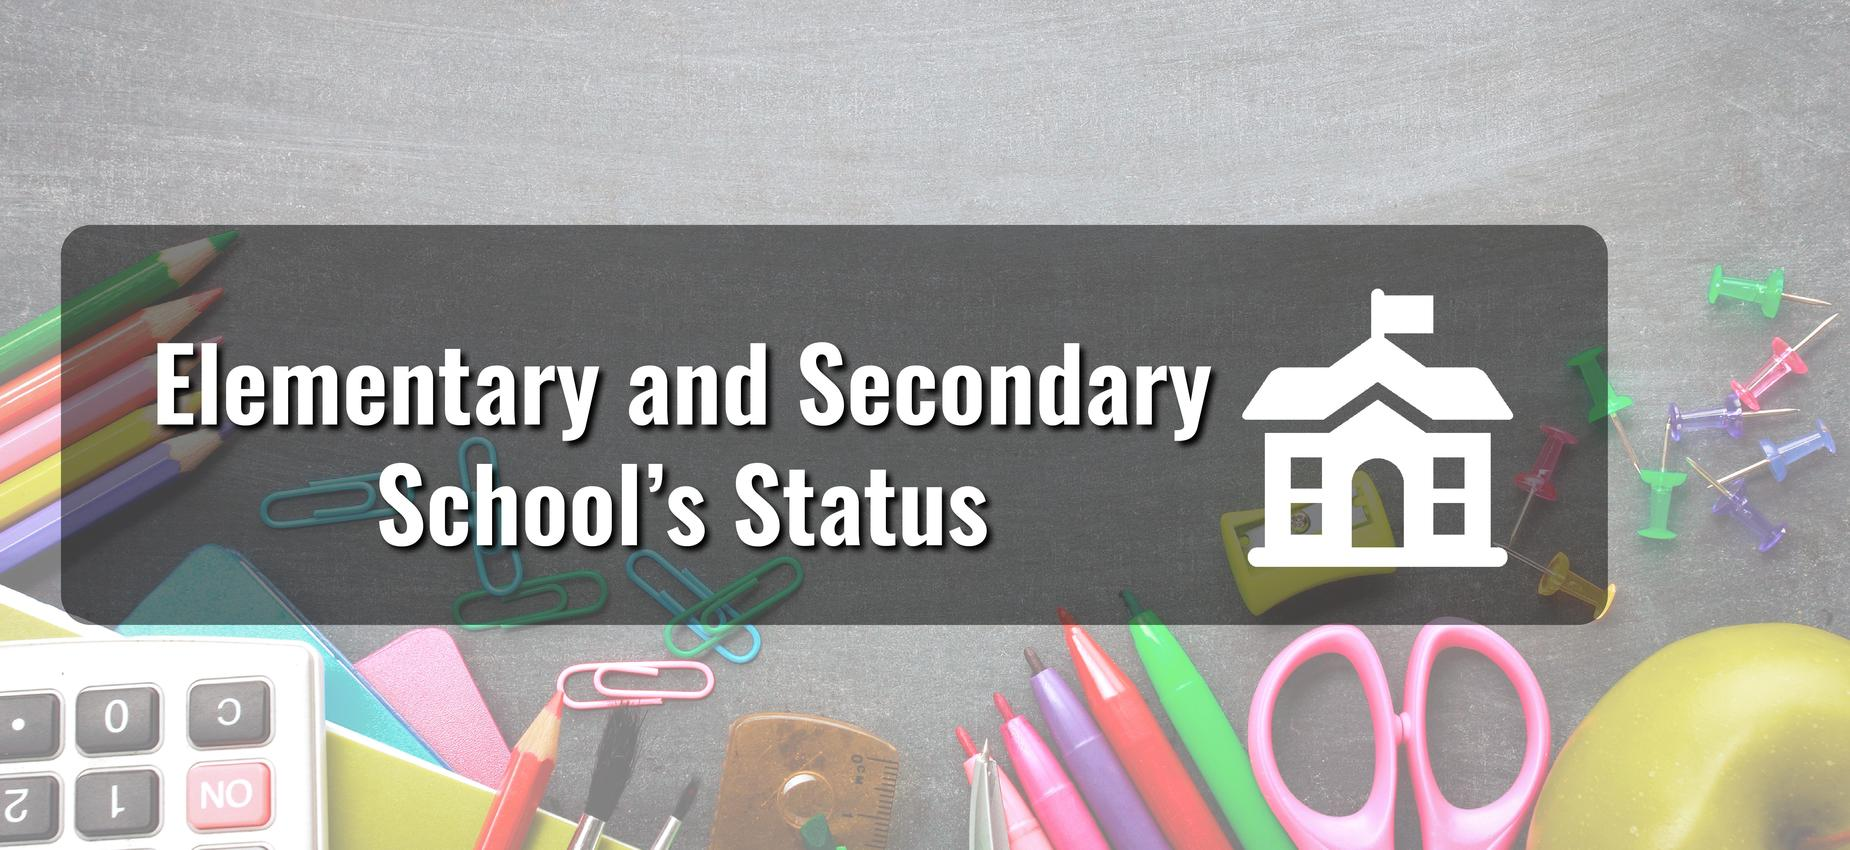 Elementary and Secondary School's Status